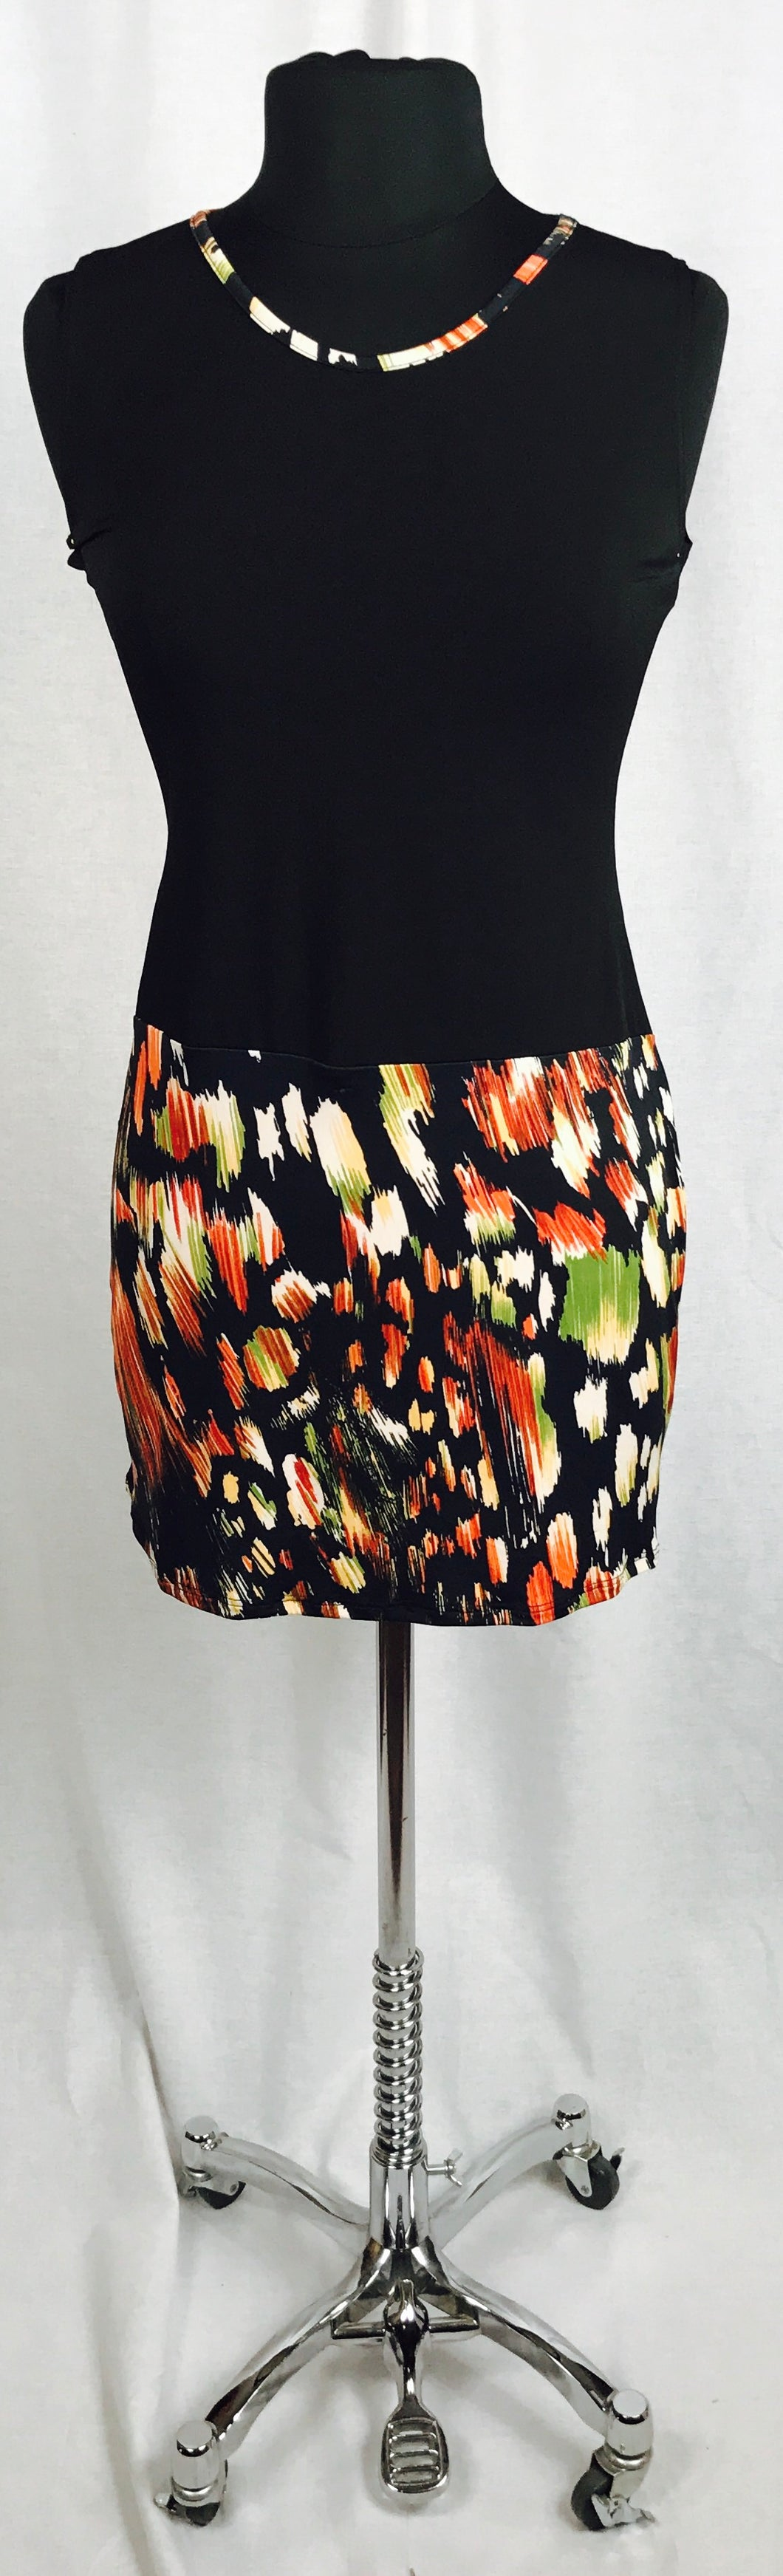 Jungle print skirt, body-con dress